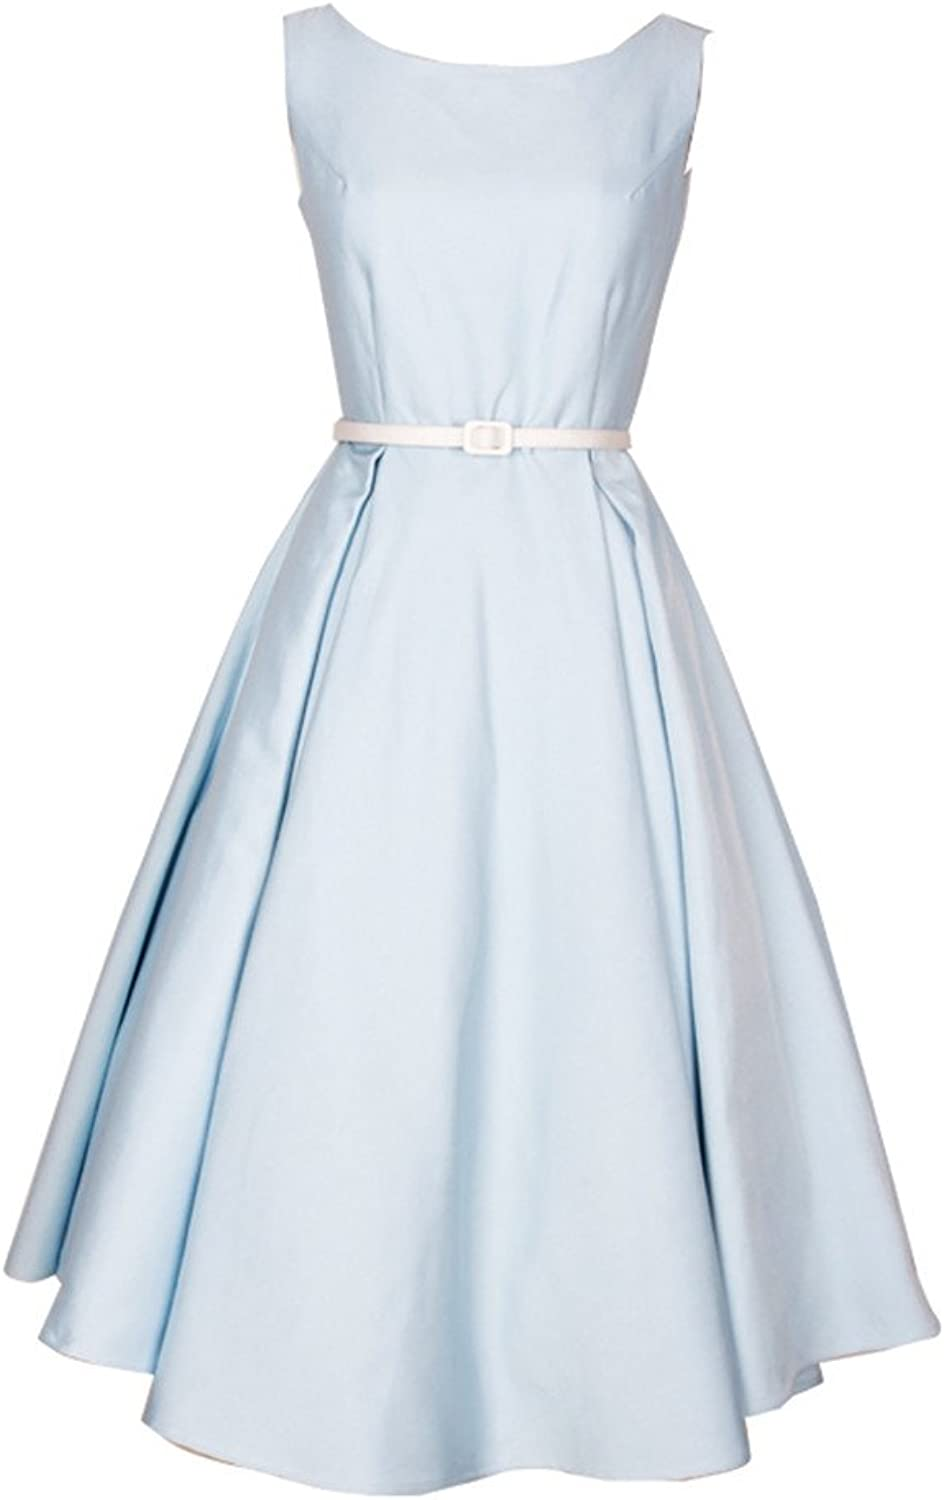 QUEENOFHOLLOW 1950 Vintage bluee Polyester Cotton Party Women Dress